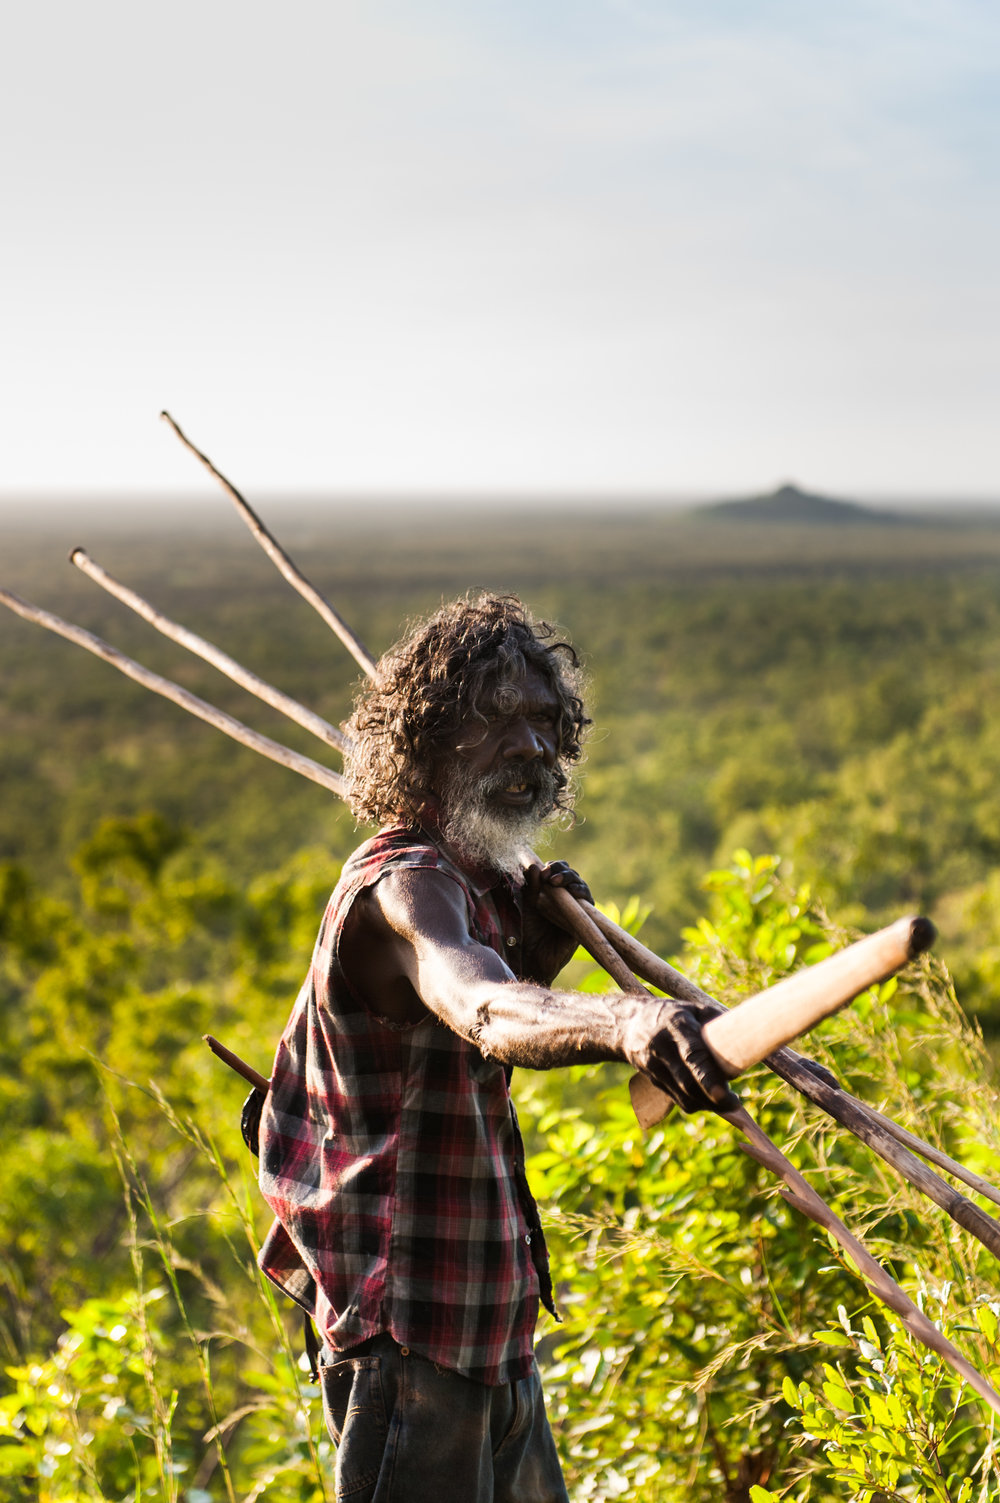 82_CCA1464 - David Gulpilil as Charlie copy.jpg